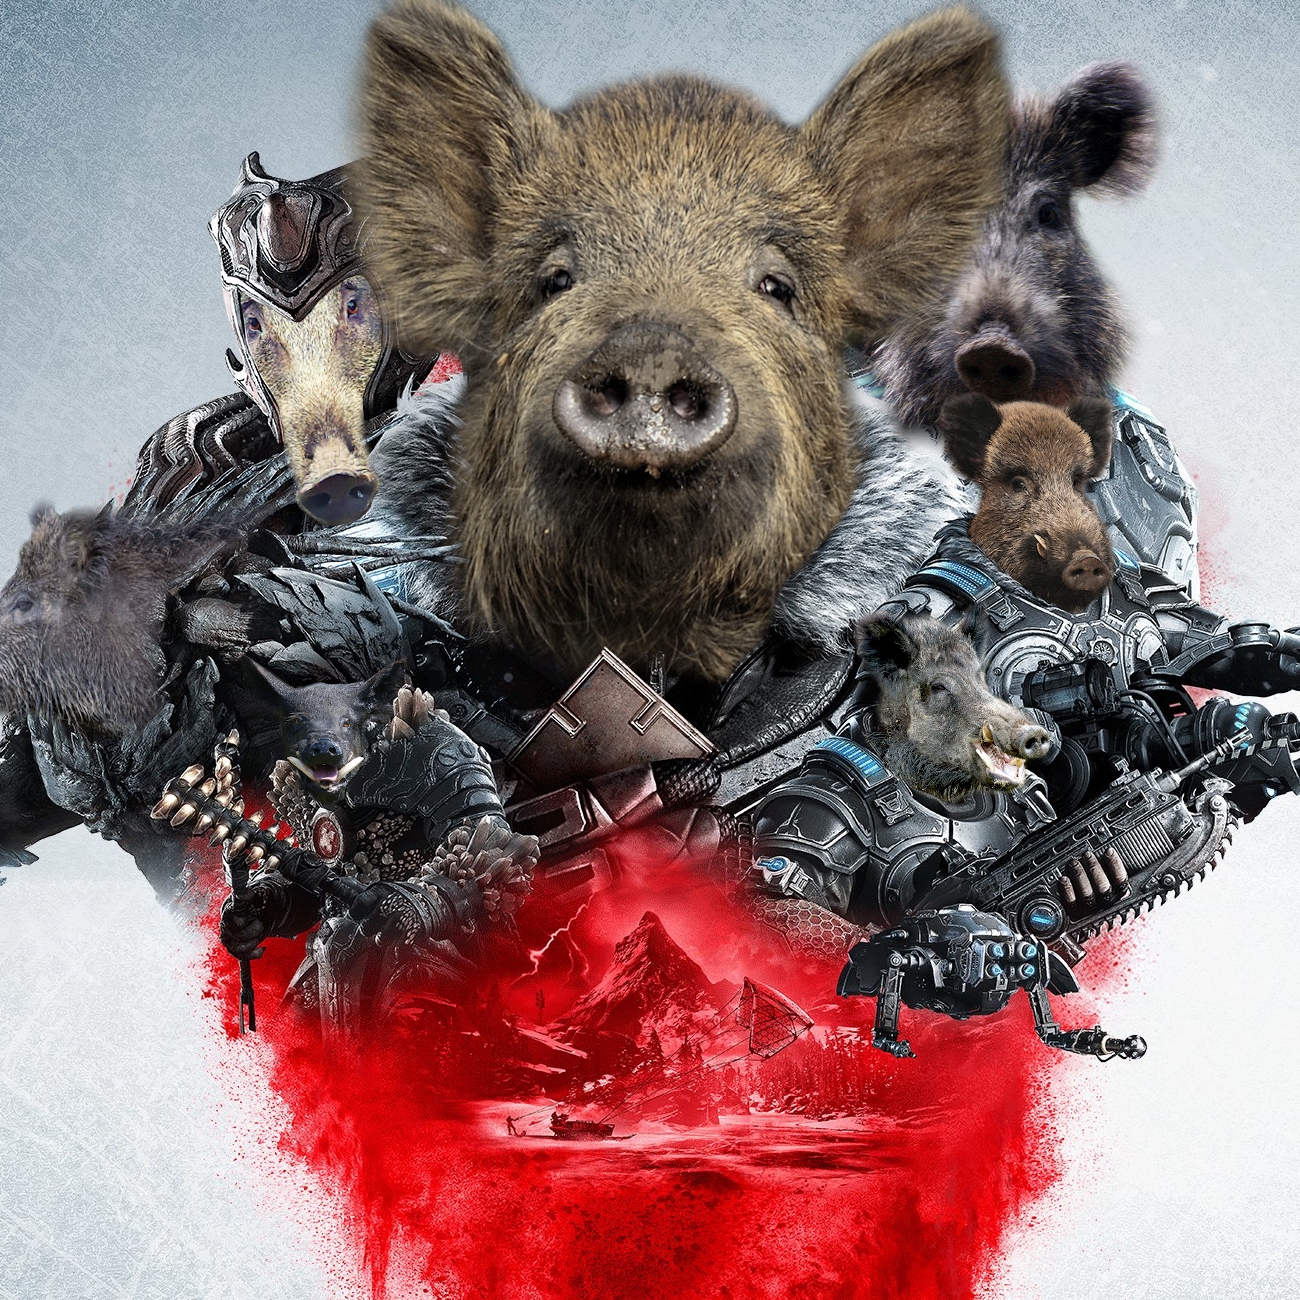 gears of boar.png